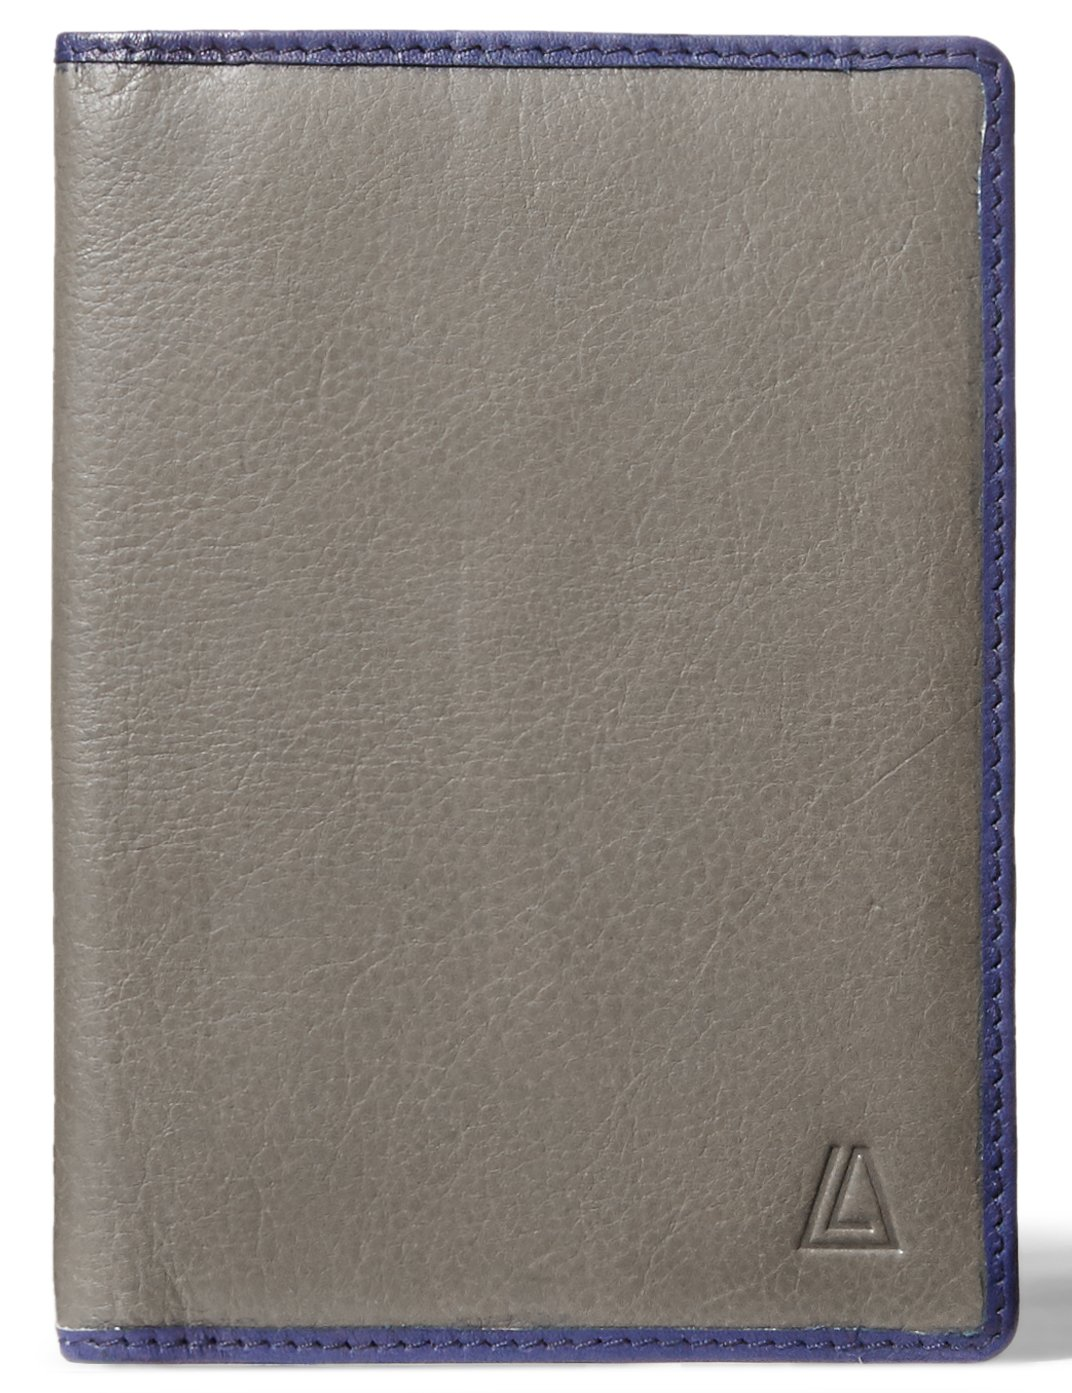 LEATHER ARCHITECT-Men's 100% Leather RFID Passport Holder-Anthracite/Ink Blue